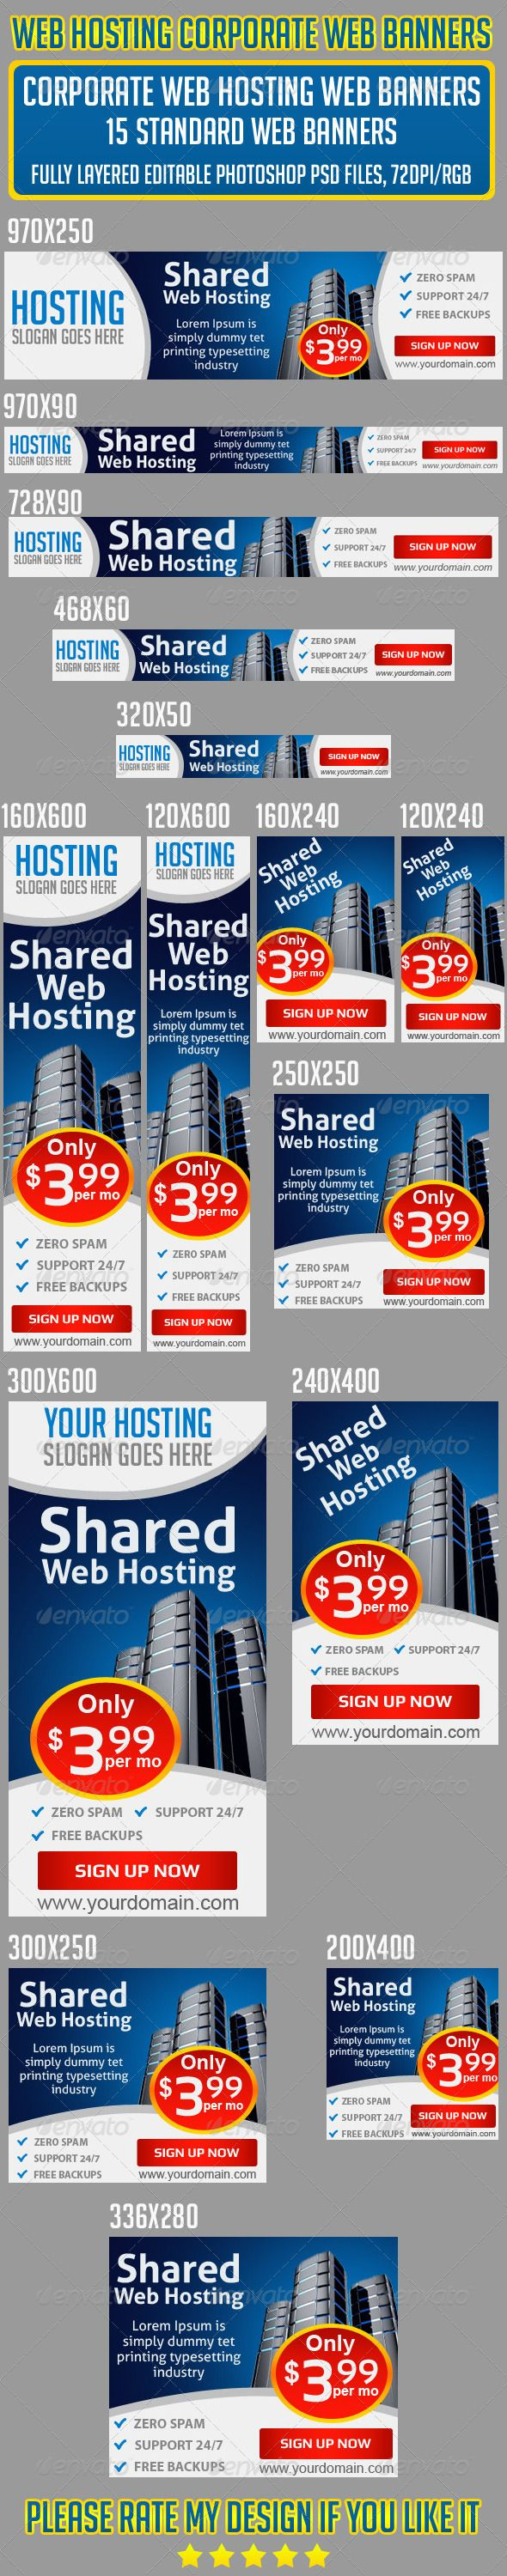 Web Hosting Banners Set Template PSD   Buy and Download: http://graphicriver.net/item/web-hosting-banners-set/6704876?WT.ac=category_thumb&WT.z_author=Asadktk&ref=ksioks